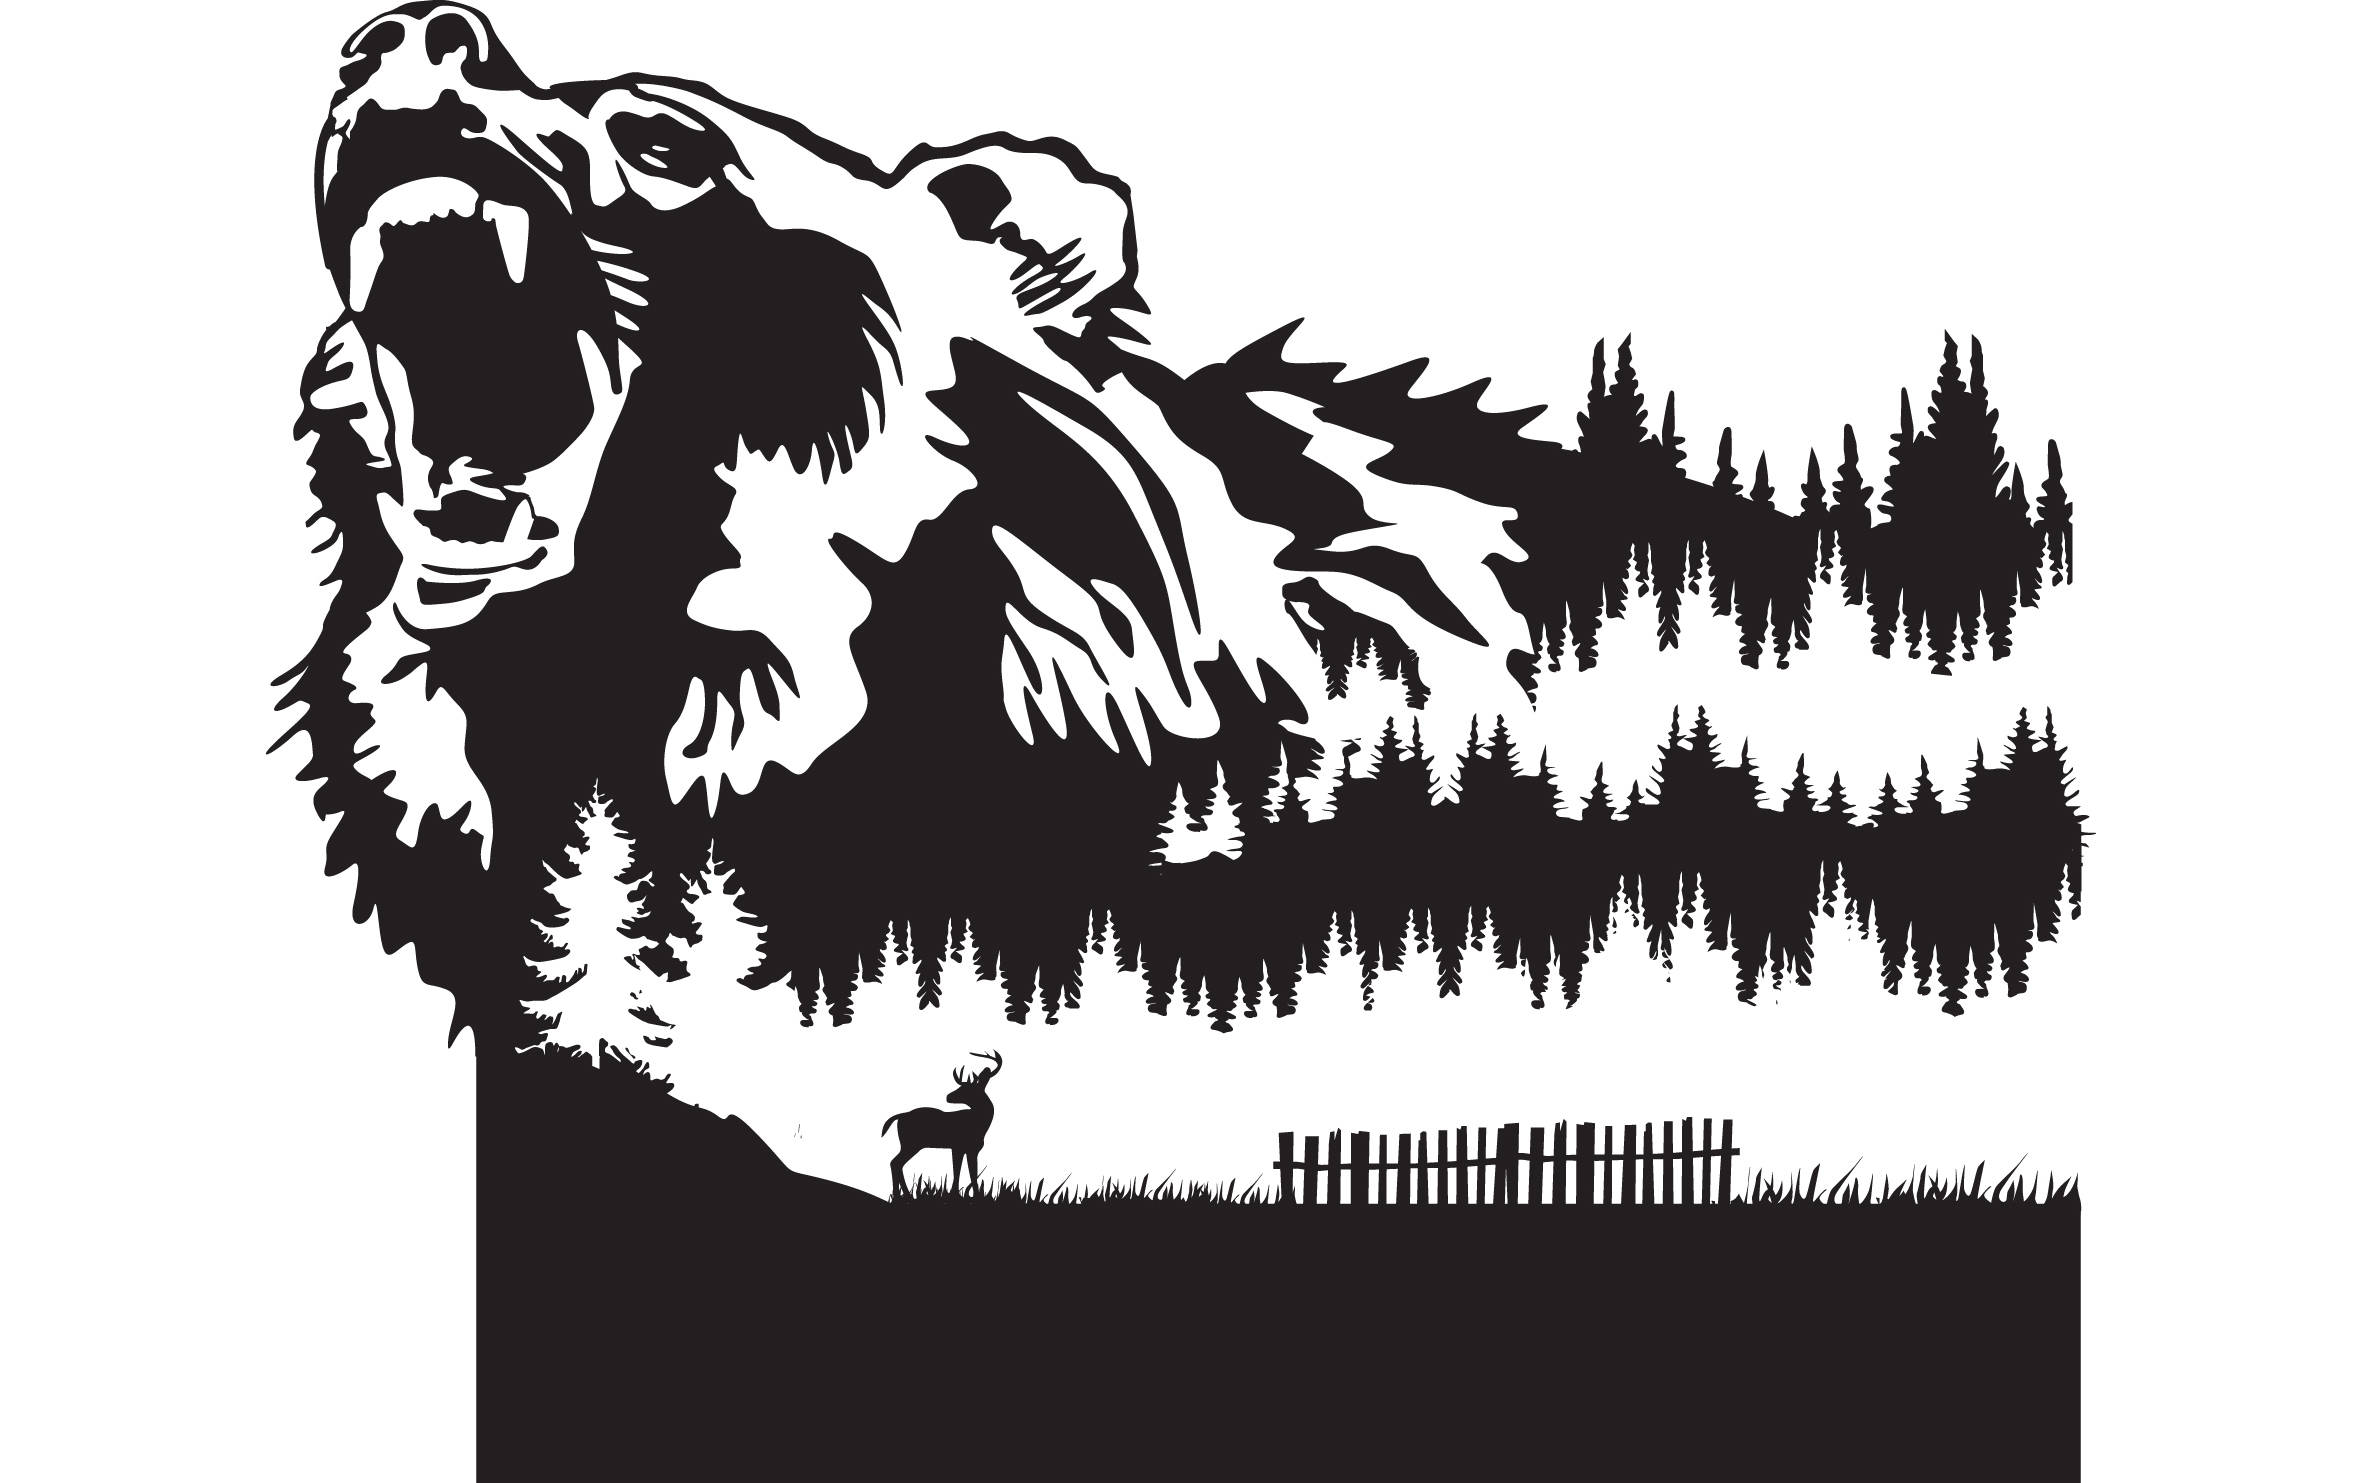 Bear scene clipart image black and white stock Download Free png Grizzly Bear 4 Nature Scene Deer Mountains Forest ... image black and white stock